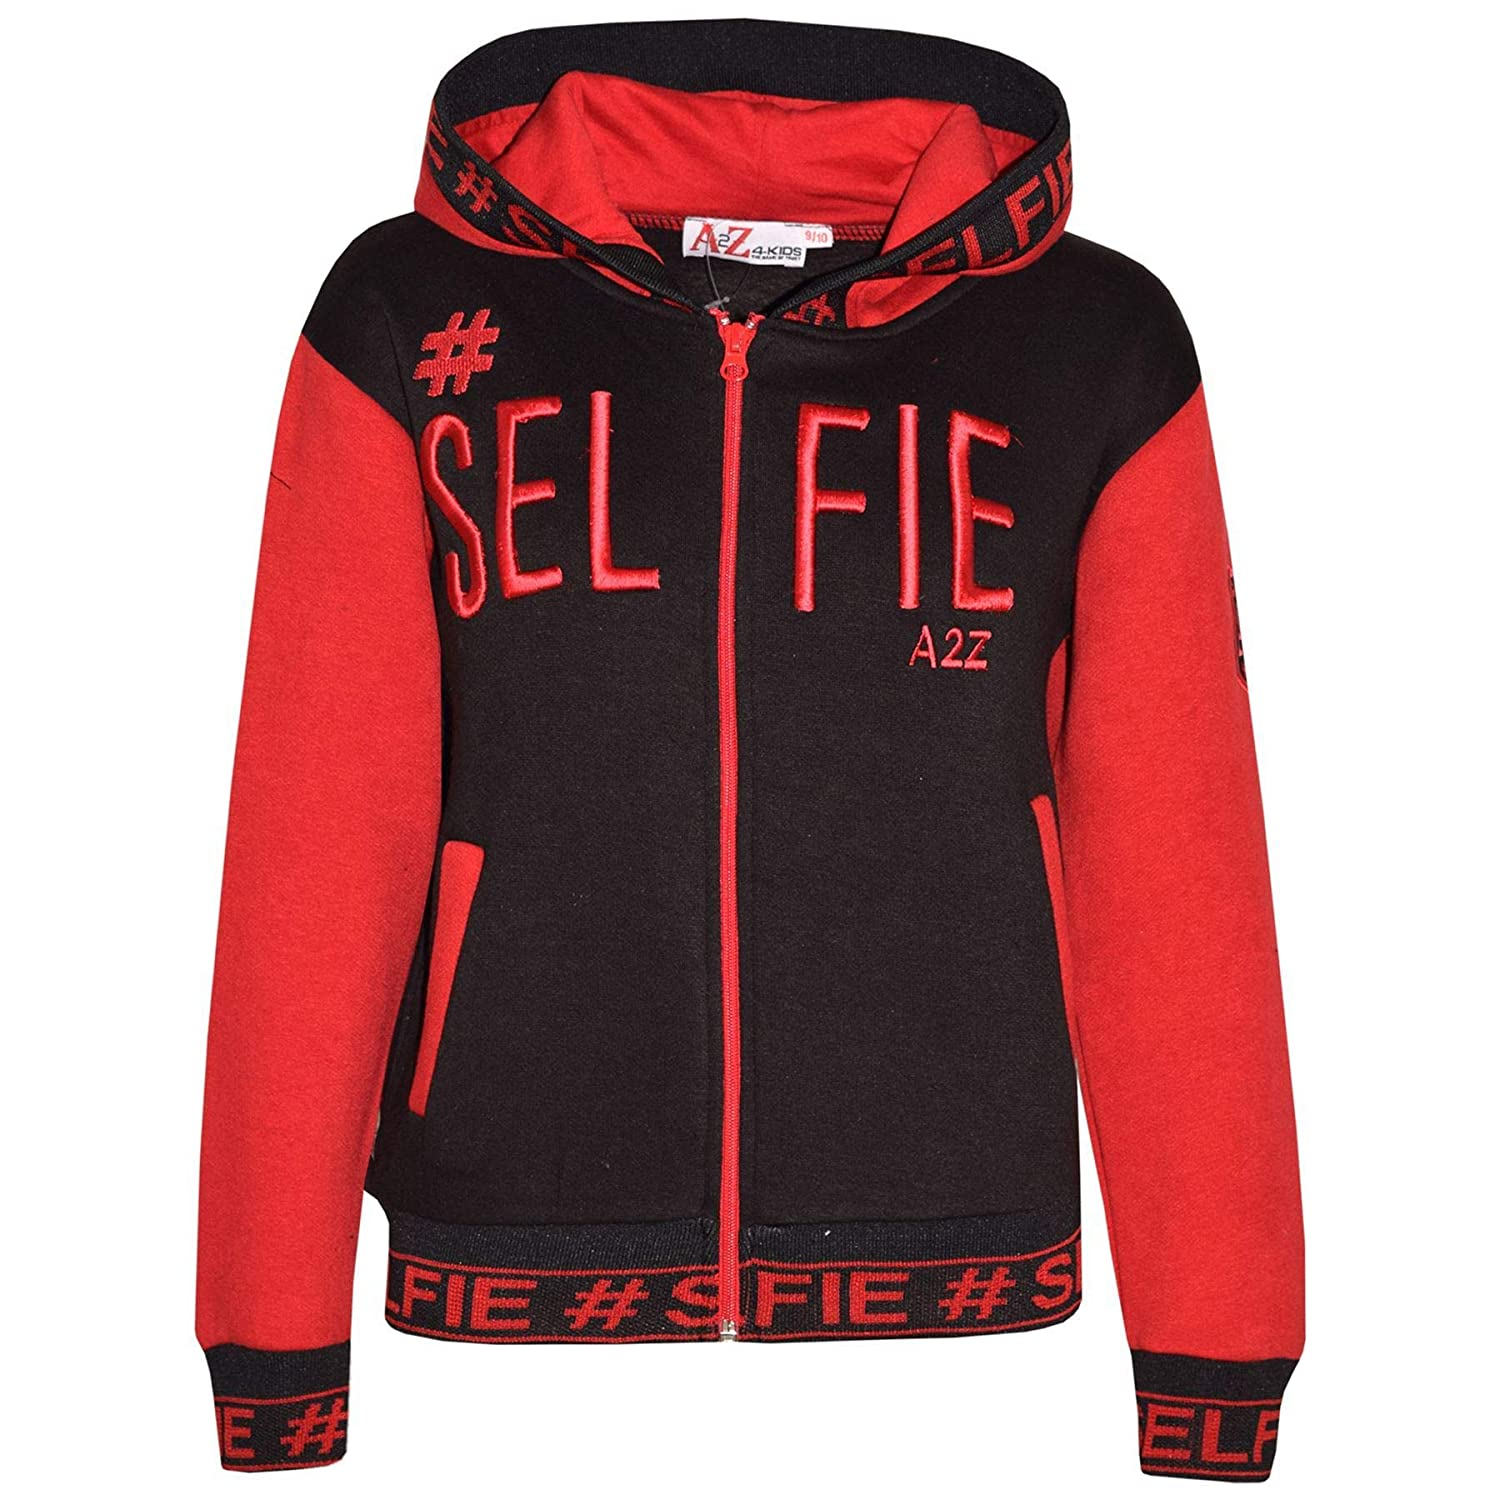 Kids Girls Boys Jackets Designers #Selfie Embroidered Hooded Hoodie Zipped Tops